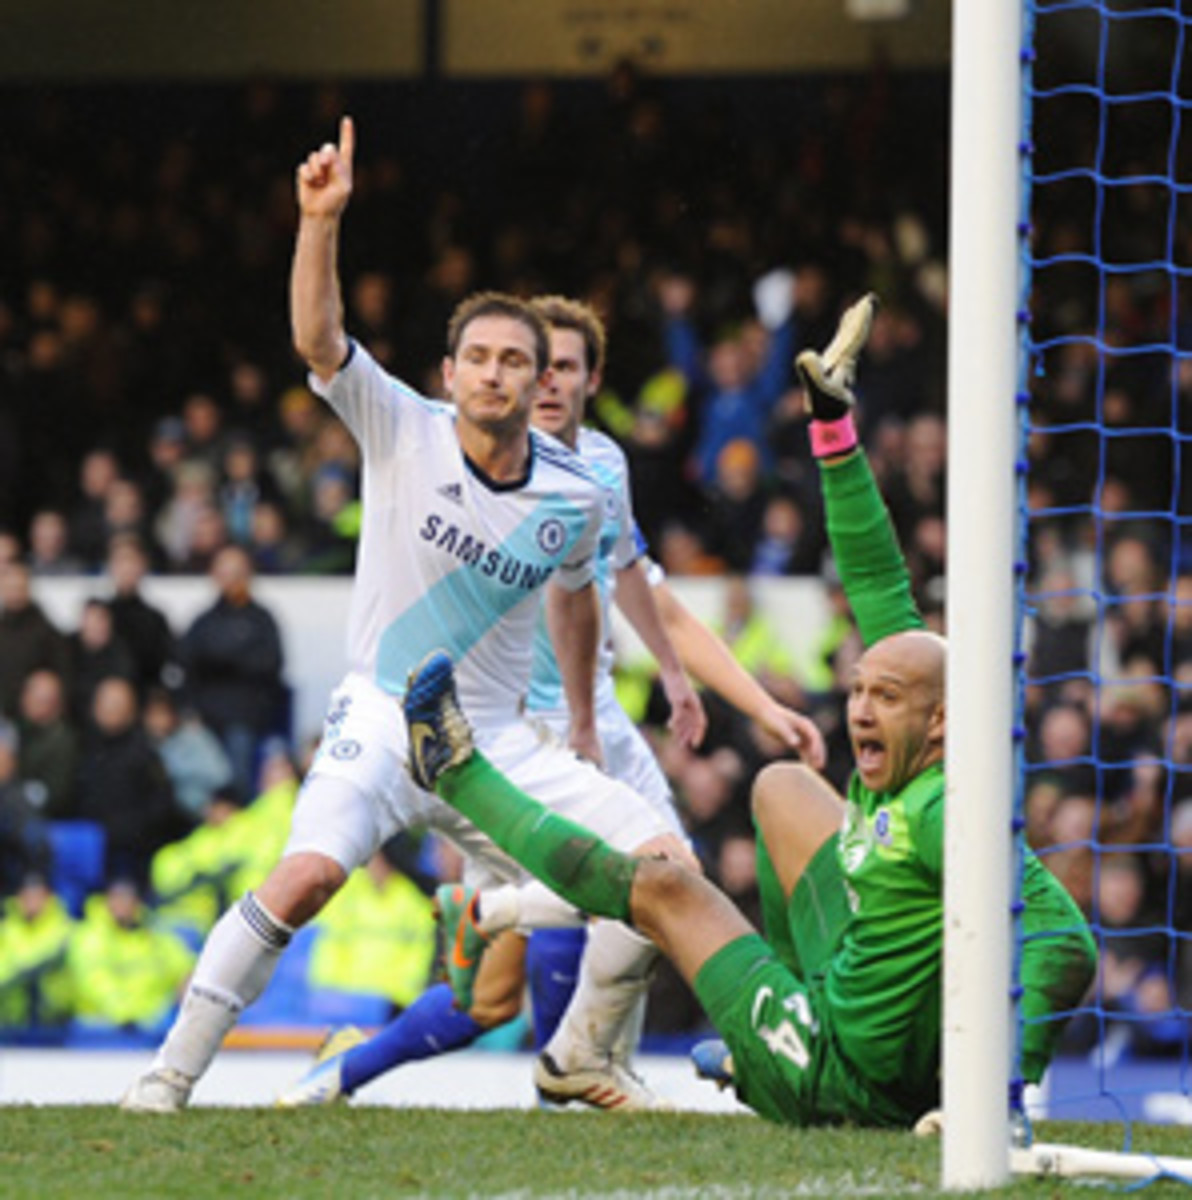 Frank Lampard's second goal gave Chelsea the lead for good in the 72nd minute.